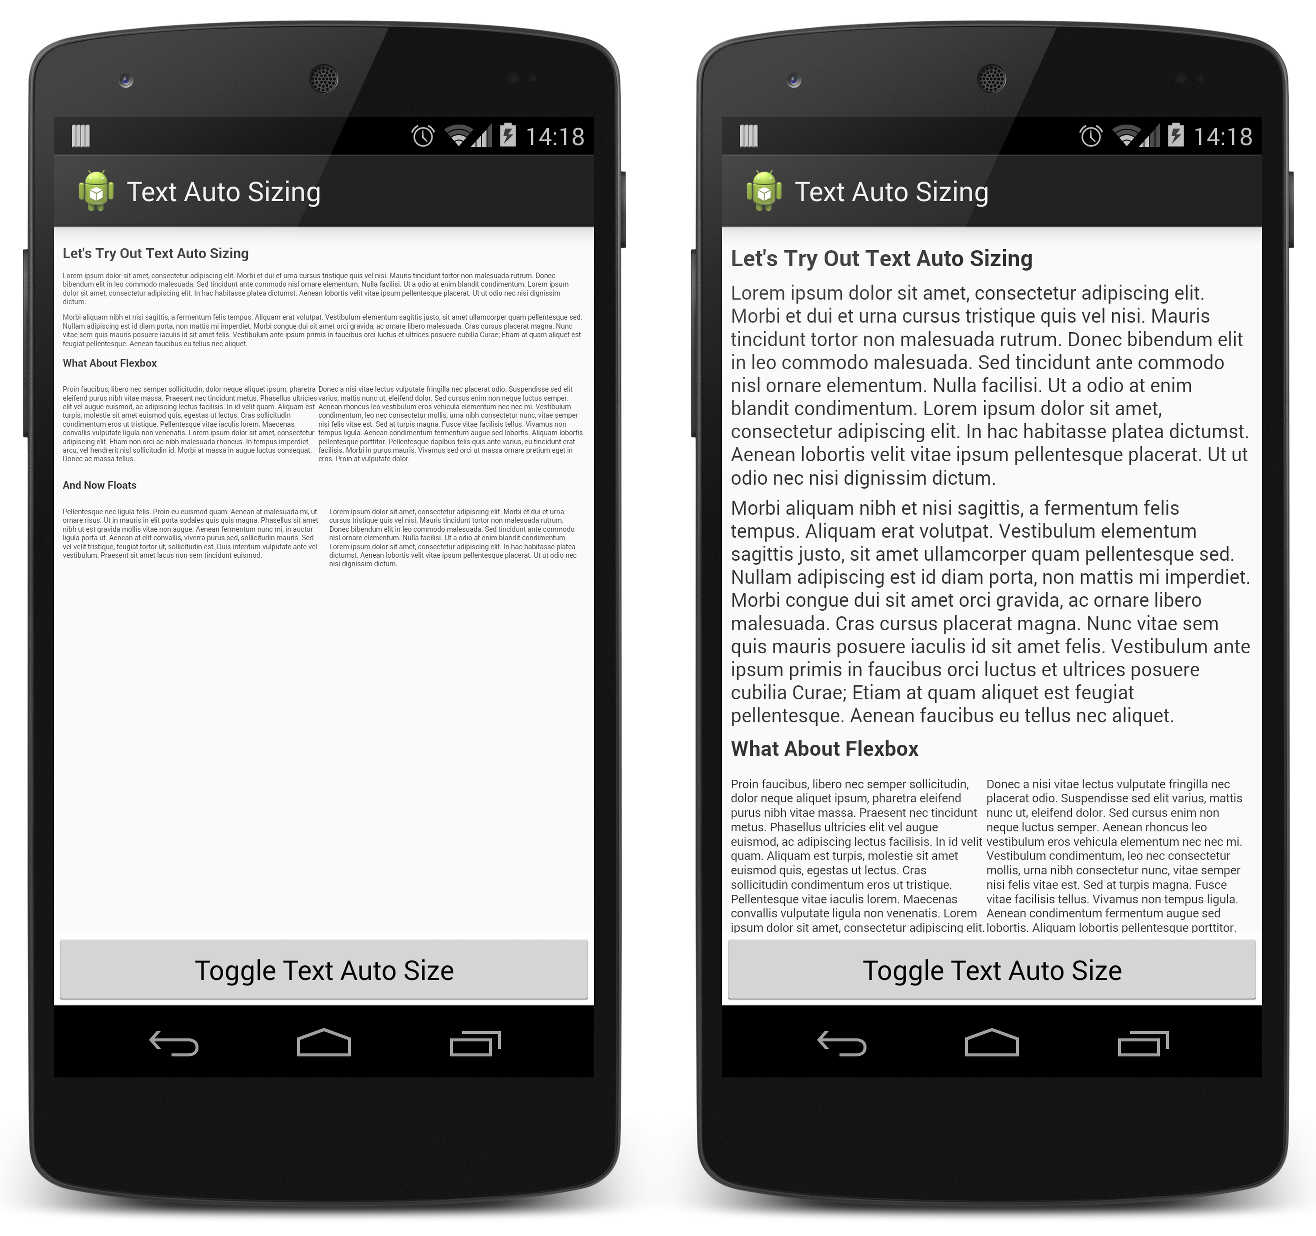 An example of how a page looks before and after text autosizing.